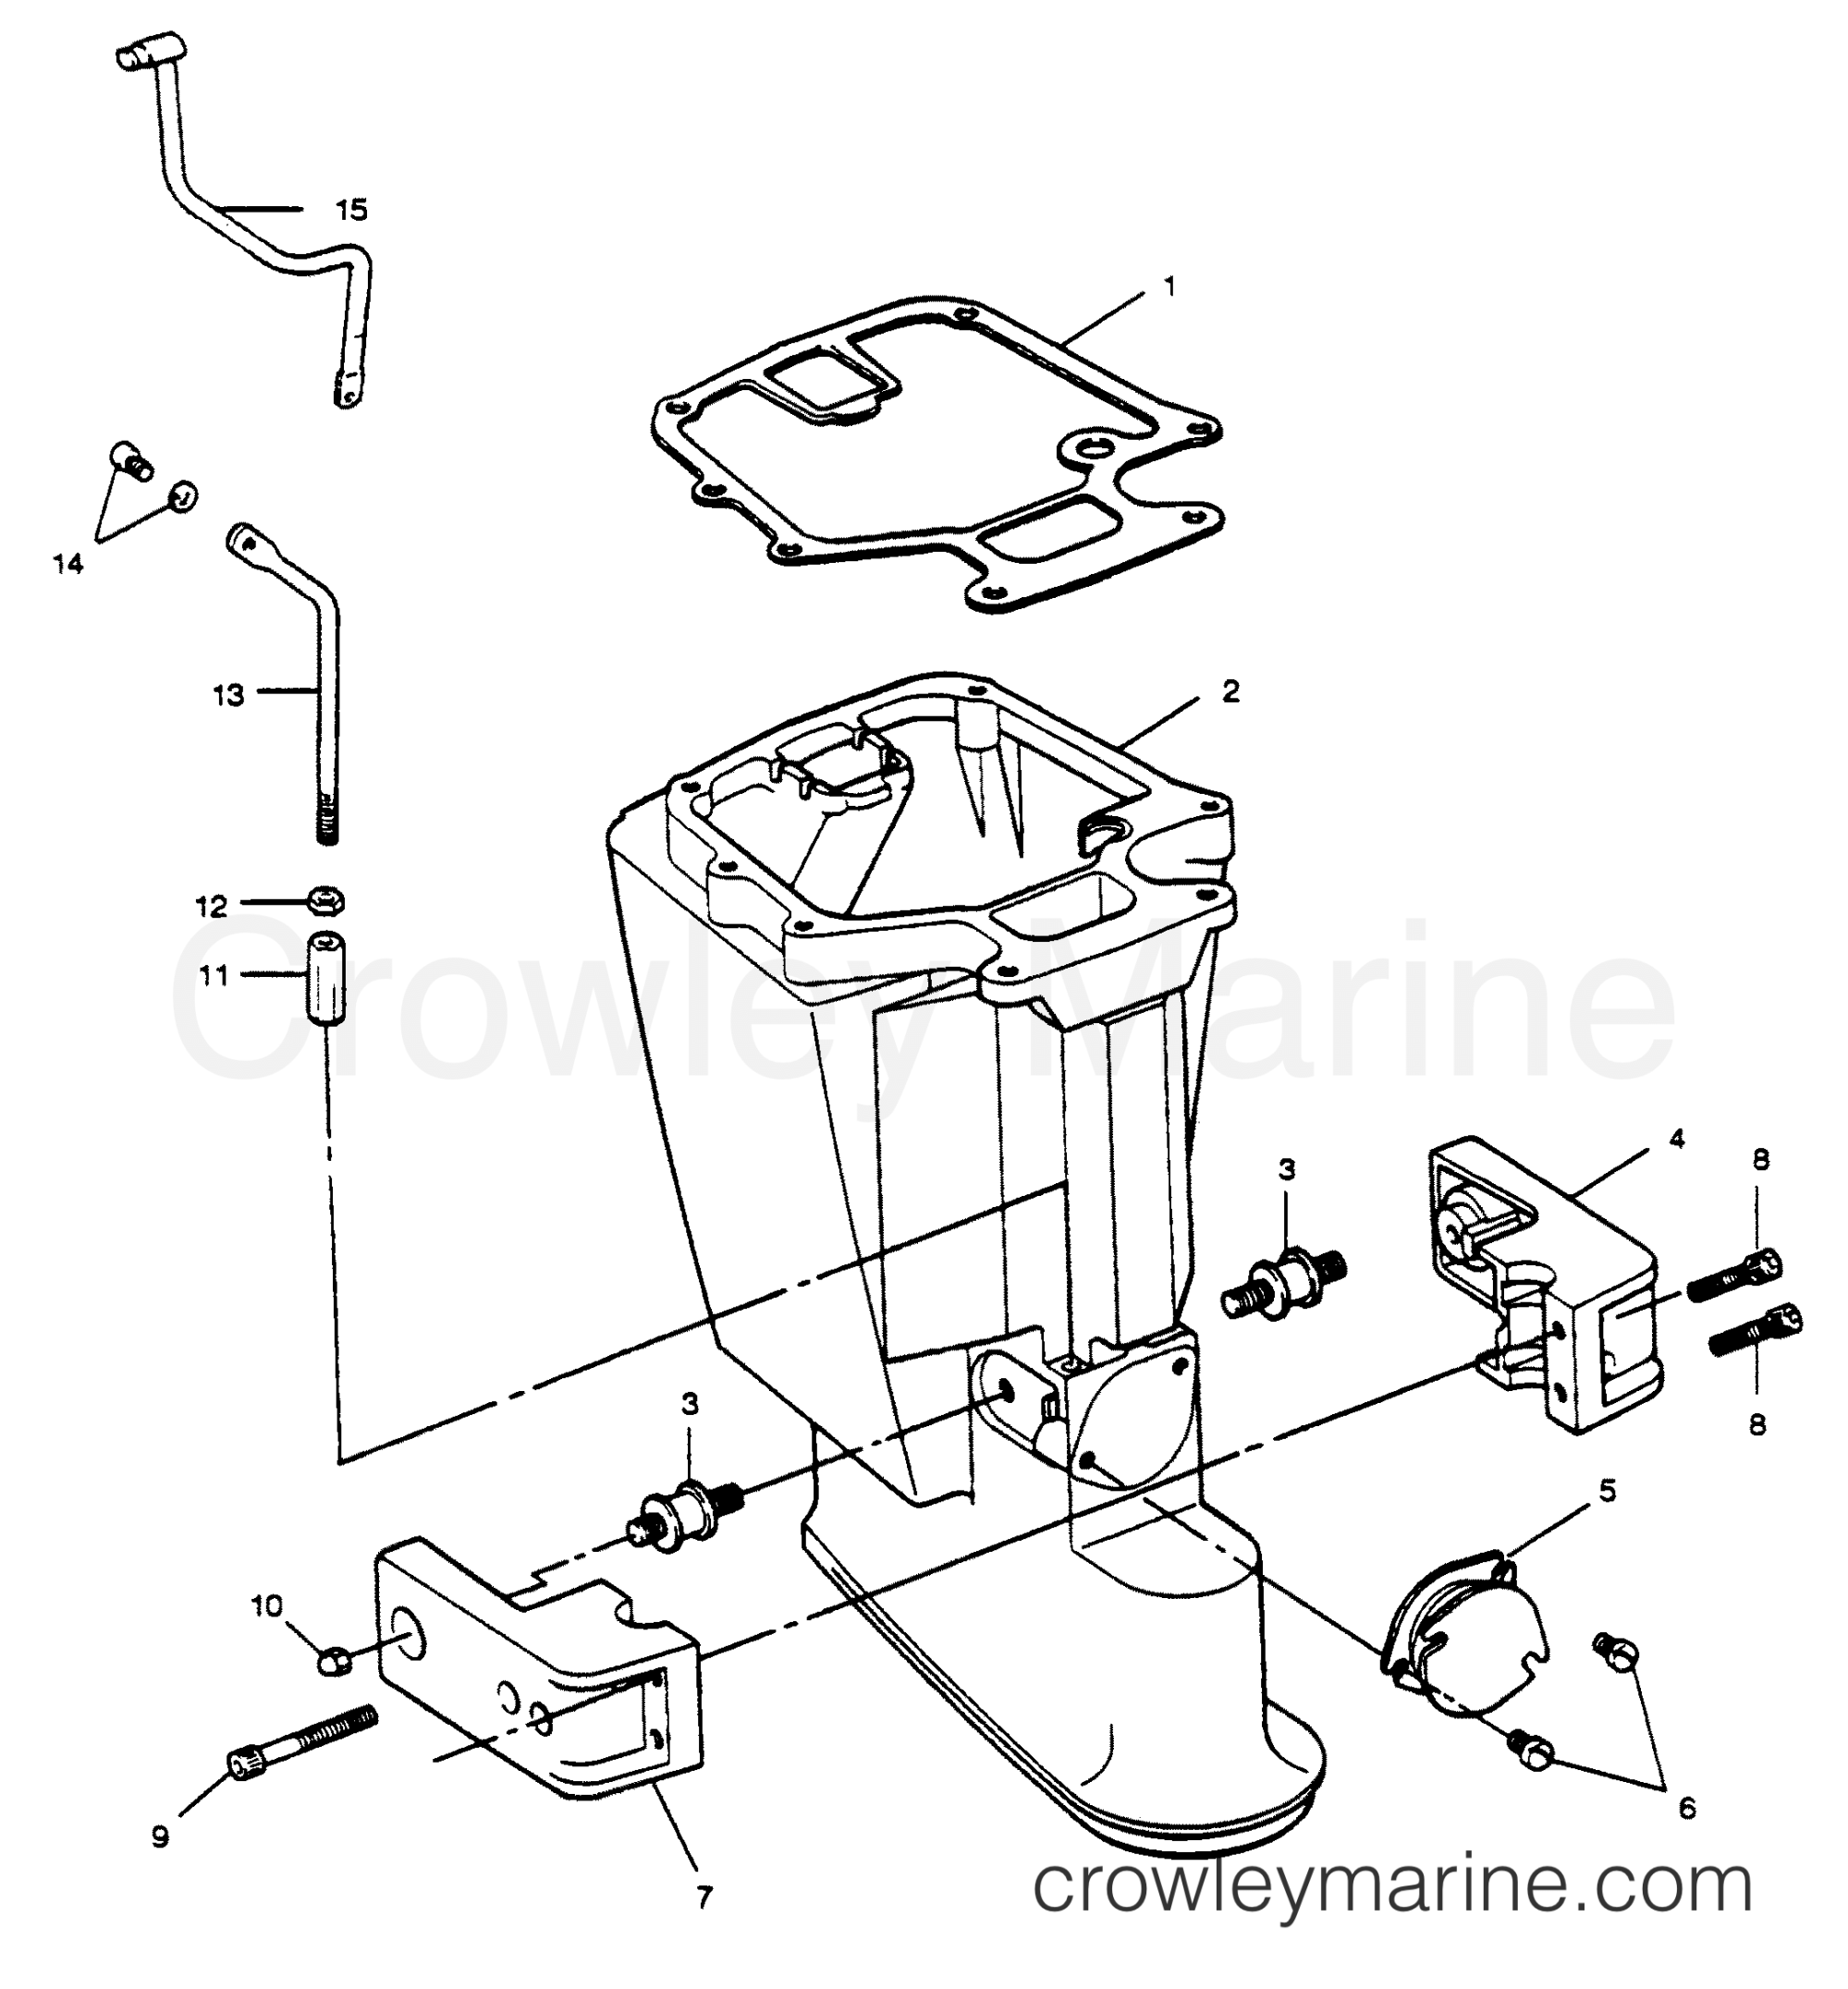 hight resolution of motor leg 1989 force outboard 50 h0505c89b b crowley marine diagram of 1989 force outboard h0505c89b gear housing diagram and